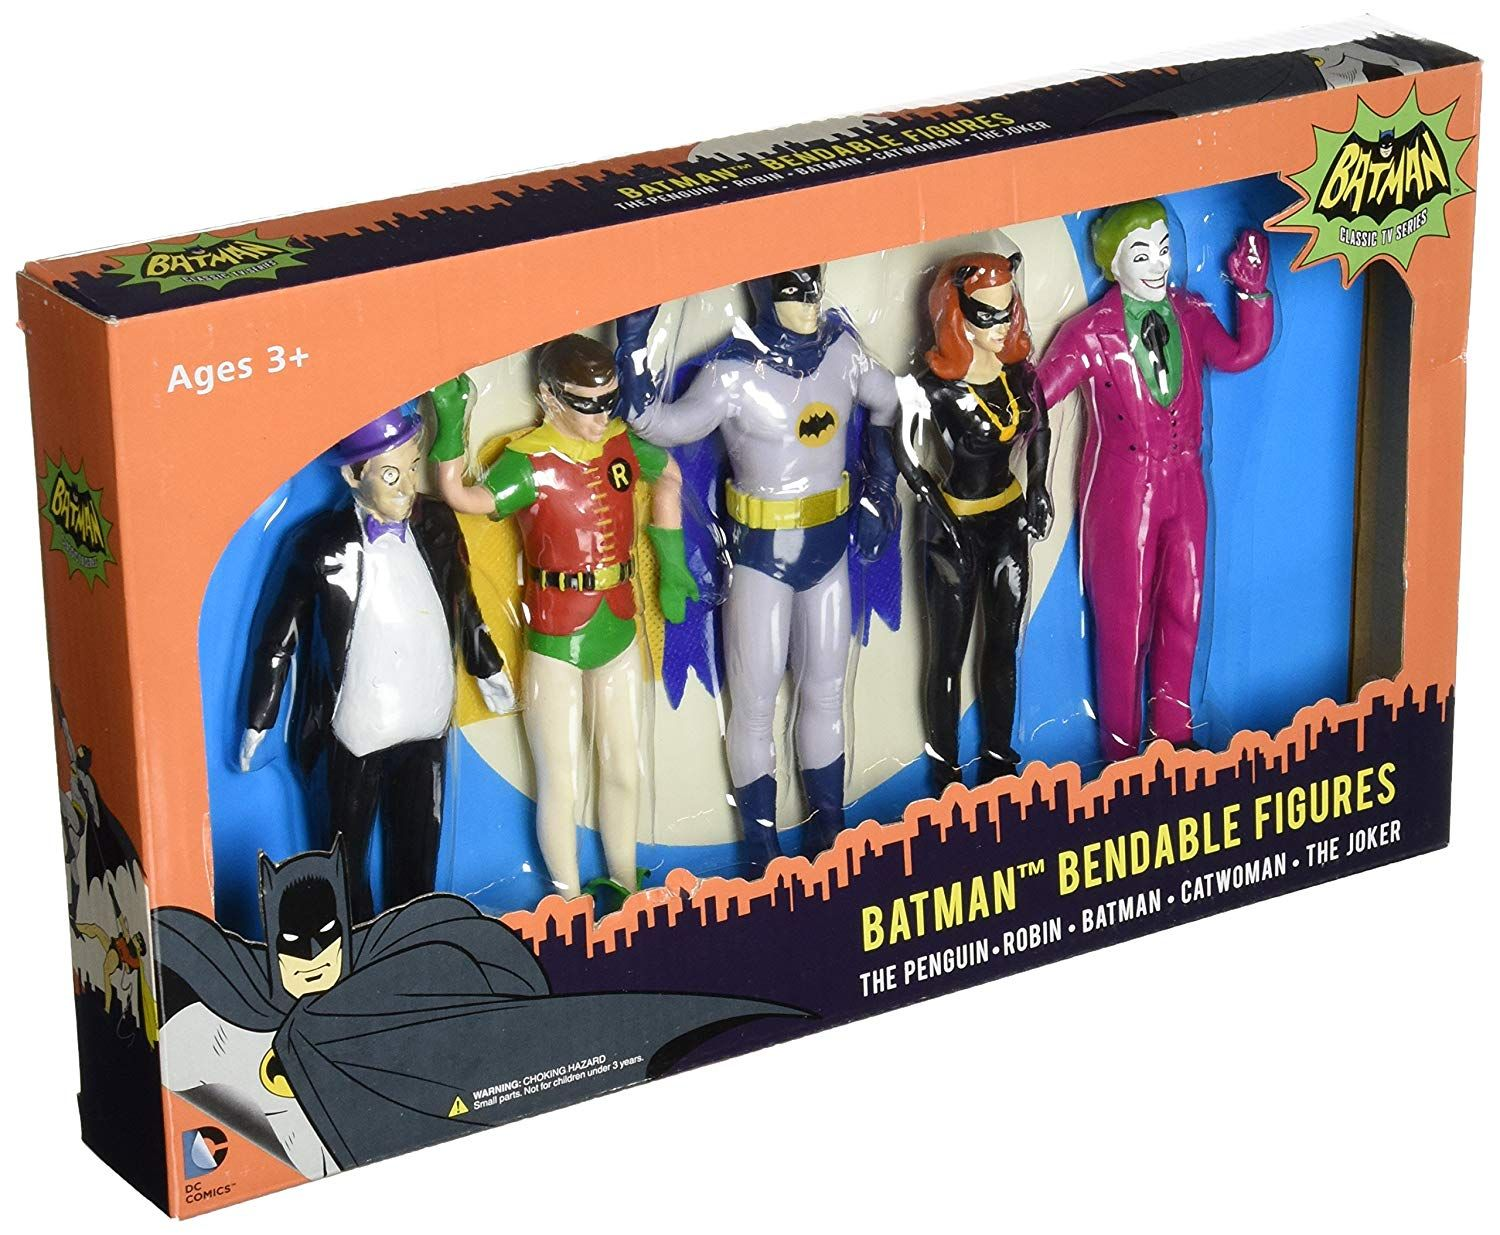 Batman dolls